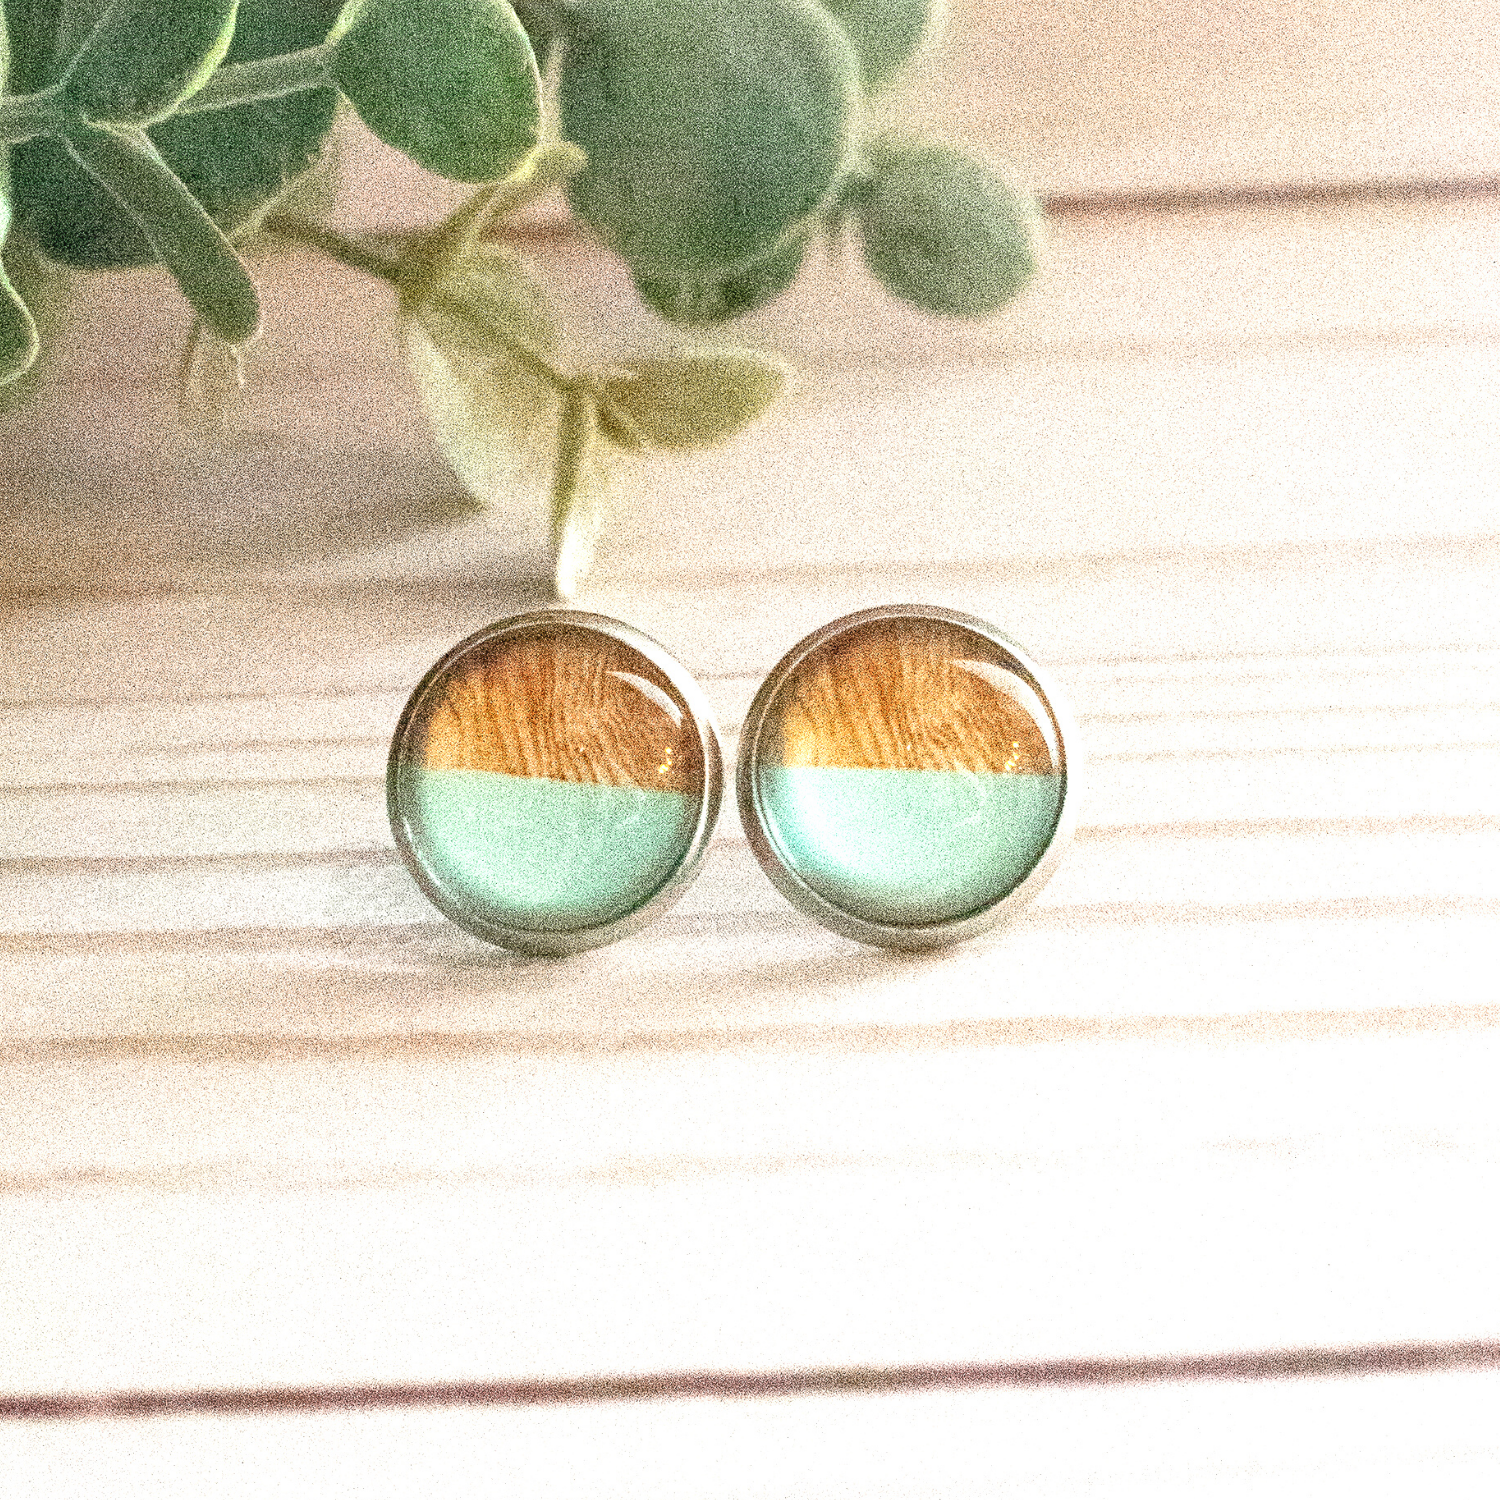 AQUA & WOOD EARRINGS